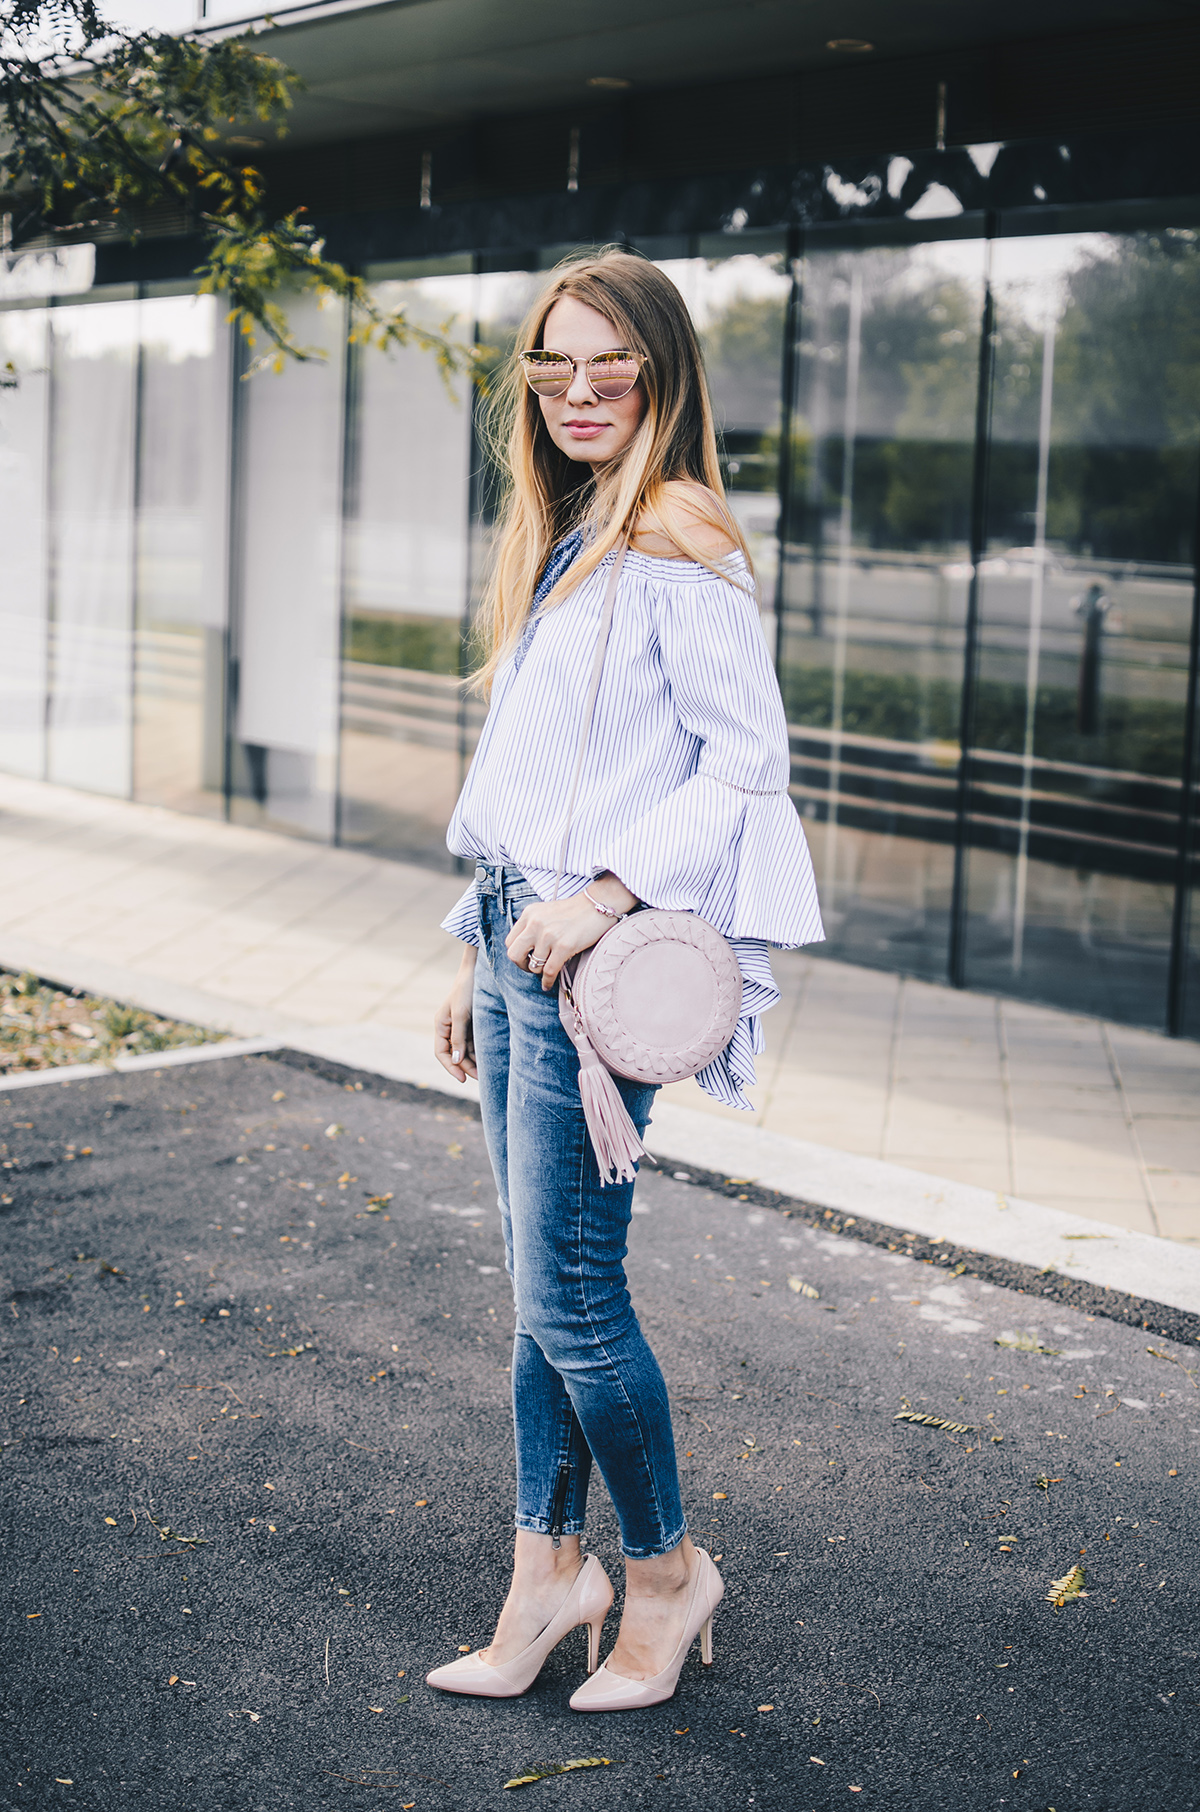 off-shoulder-ruffle-sleeves-zara-jeans-mirroredsunglasses-scarf-2